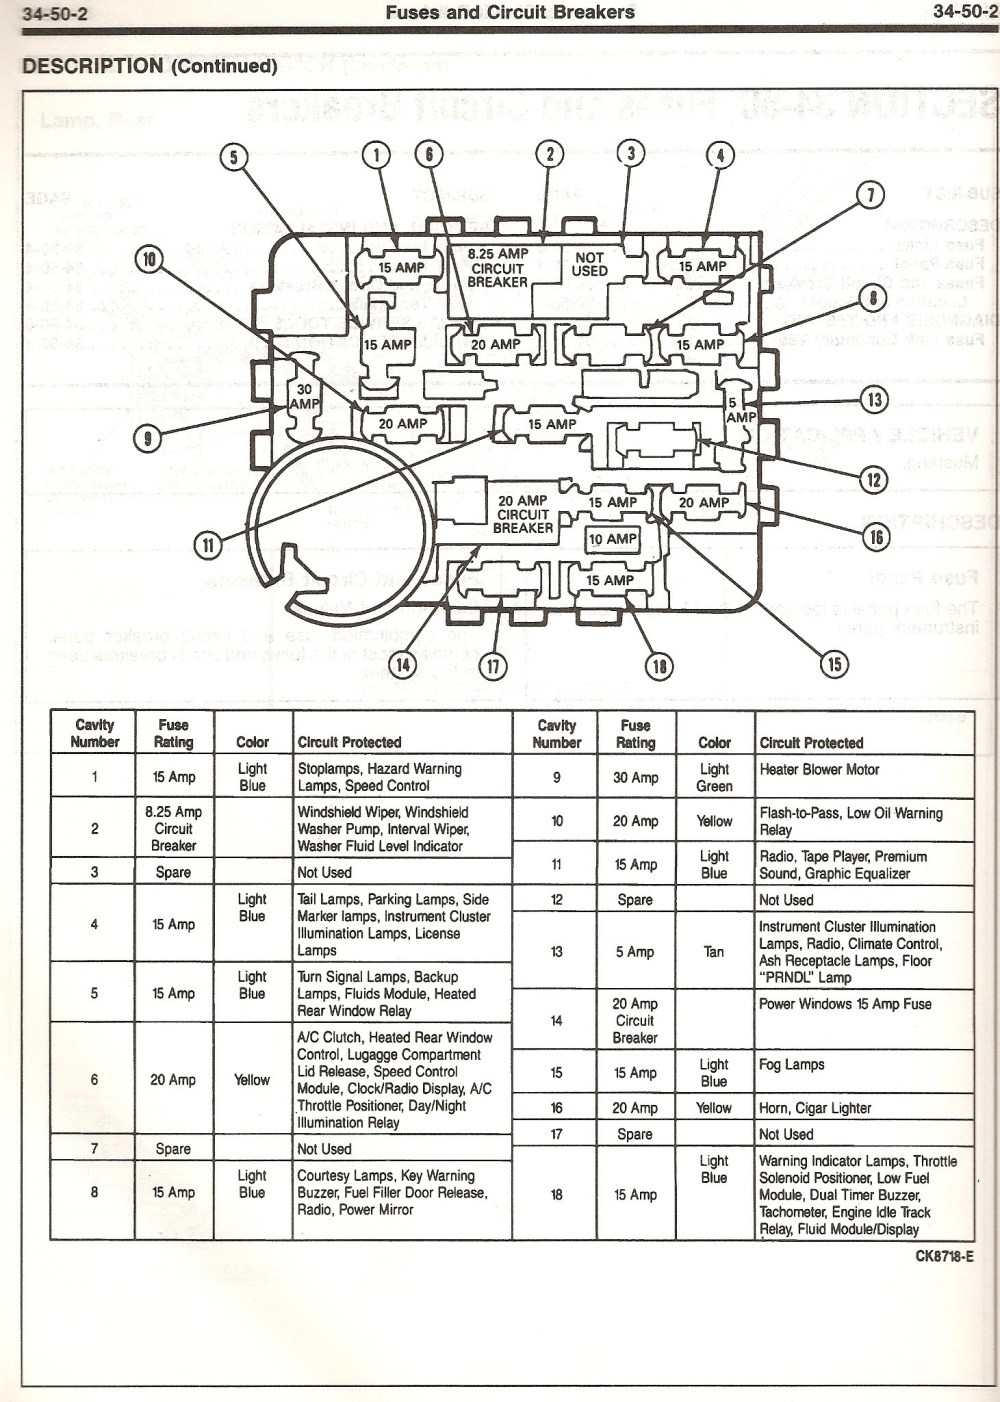 medium resolution of 1995 ford mustang fuse panel diagram wiring diagram datasource 1985 ford mustang fuse box diagram wiring